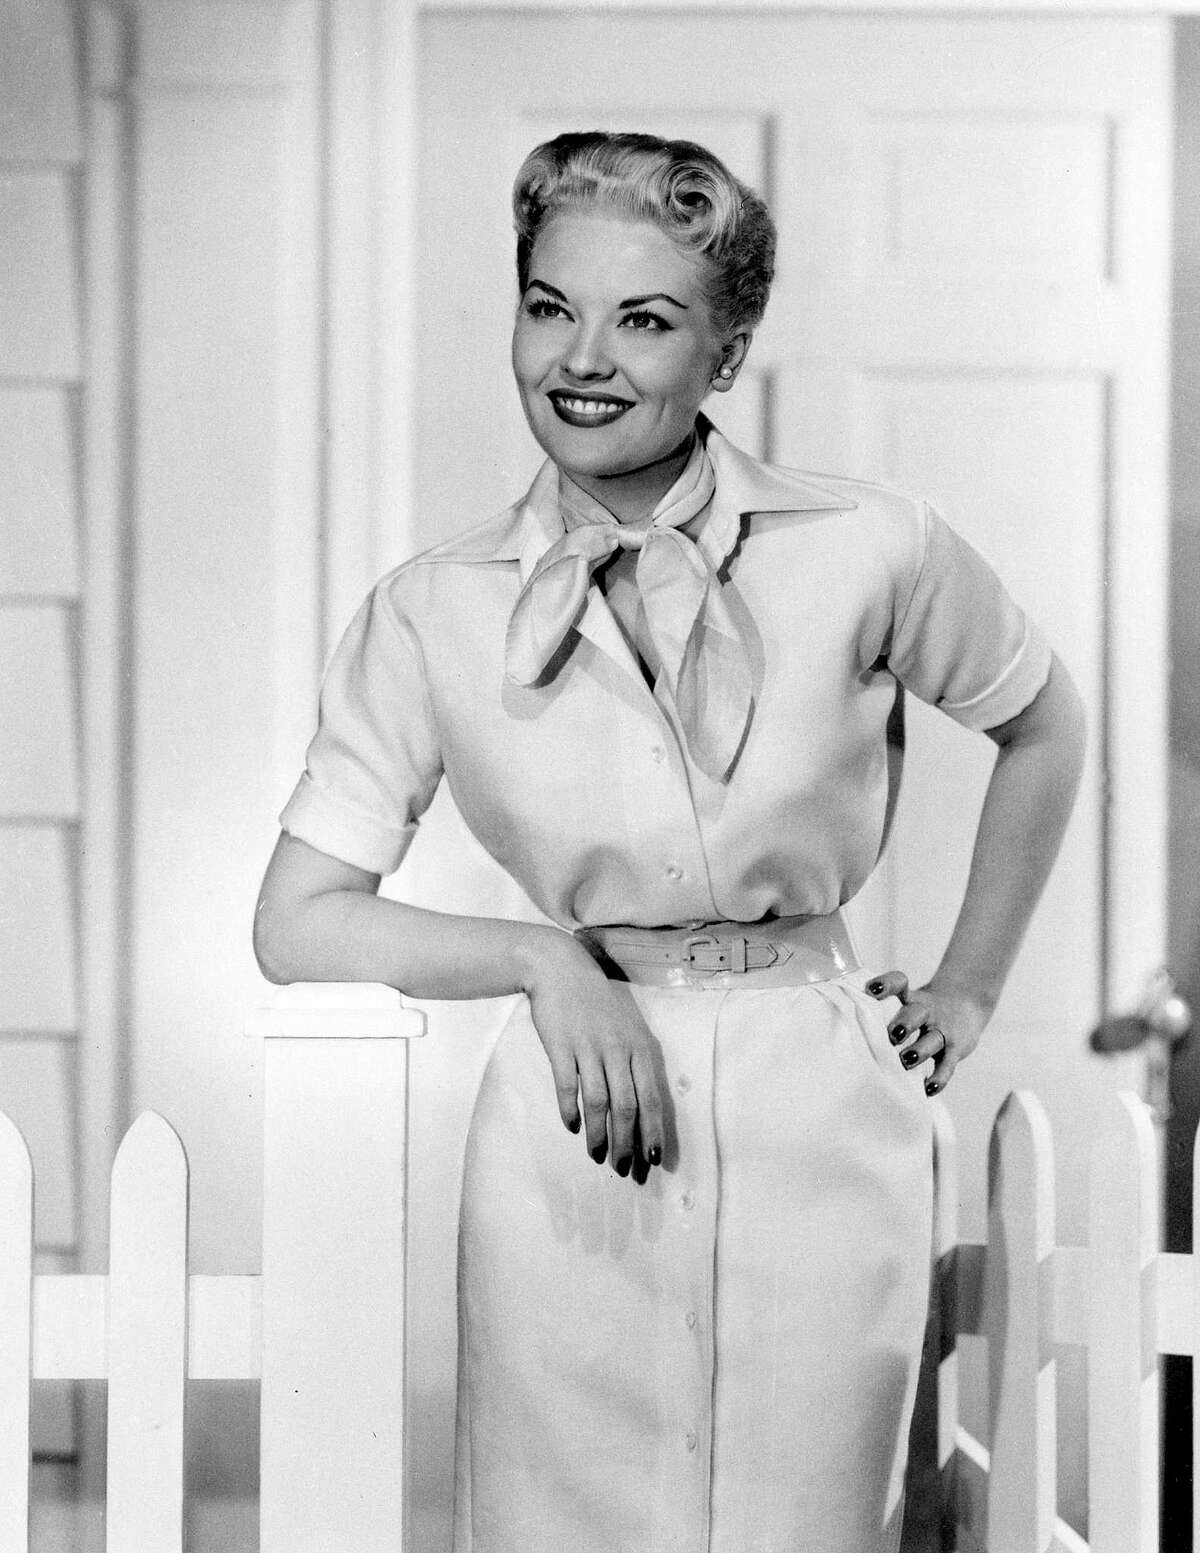 Patti Page, 1927-2013: The American signer known for